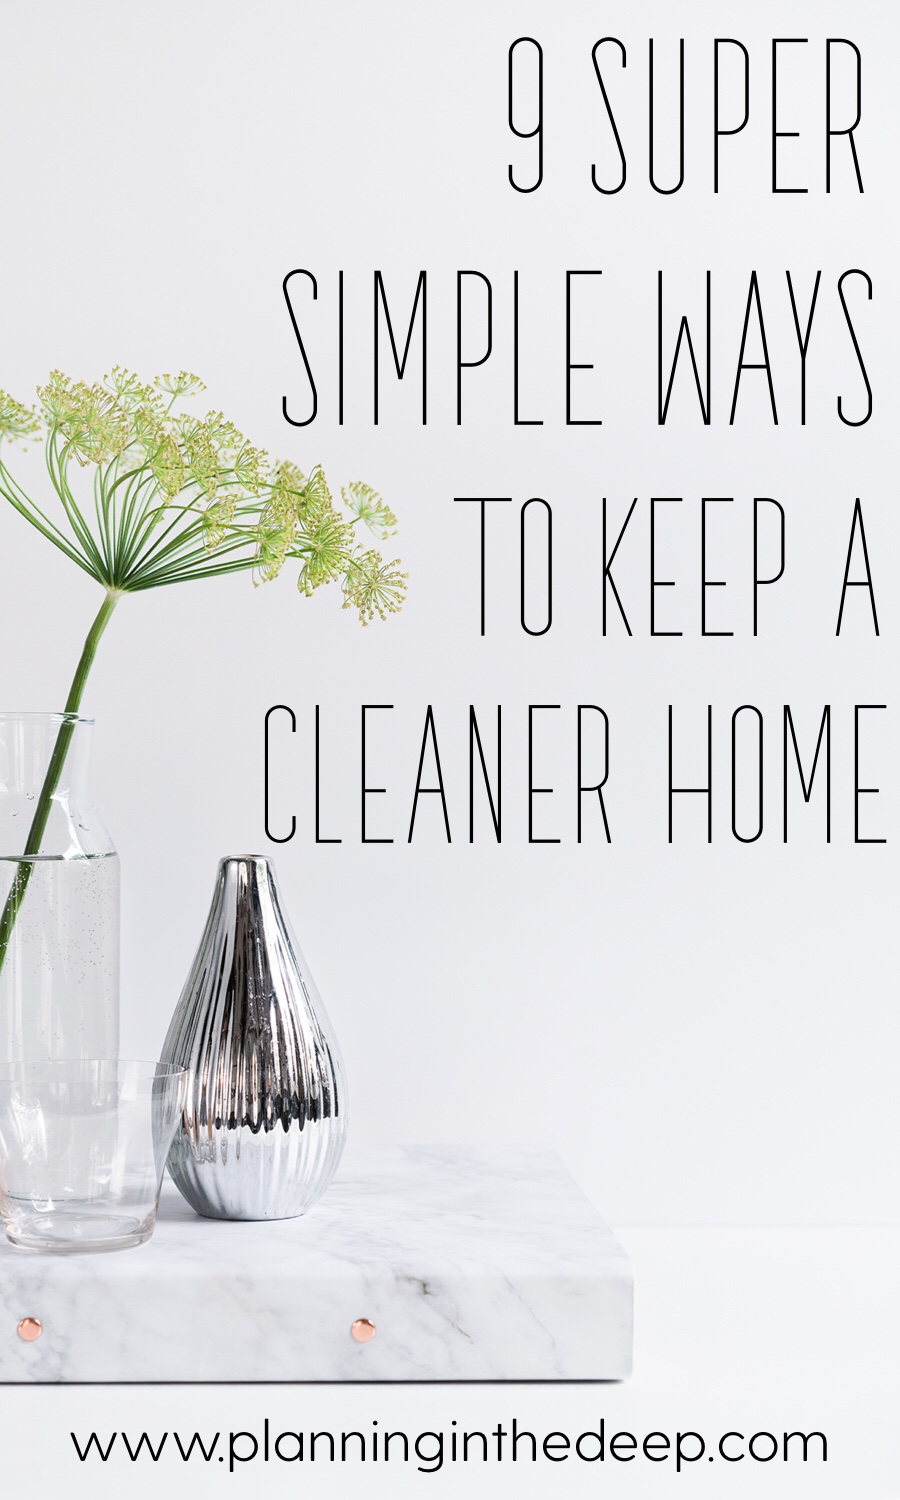 9 Cleaning tasks you should do everyday to keep a Cleaner home